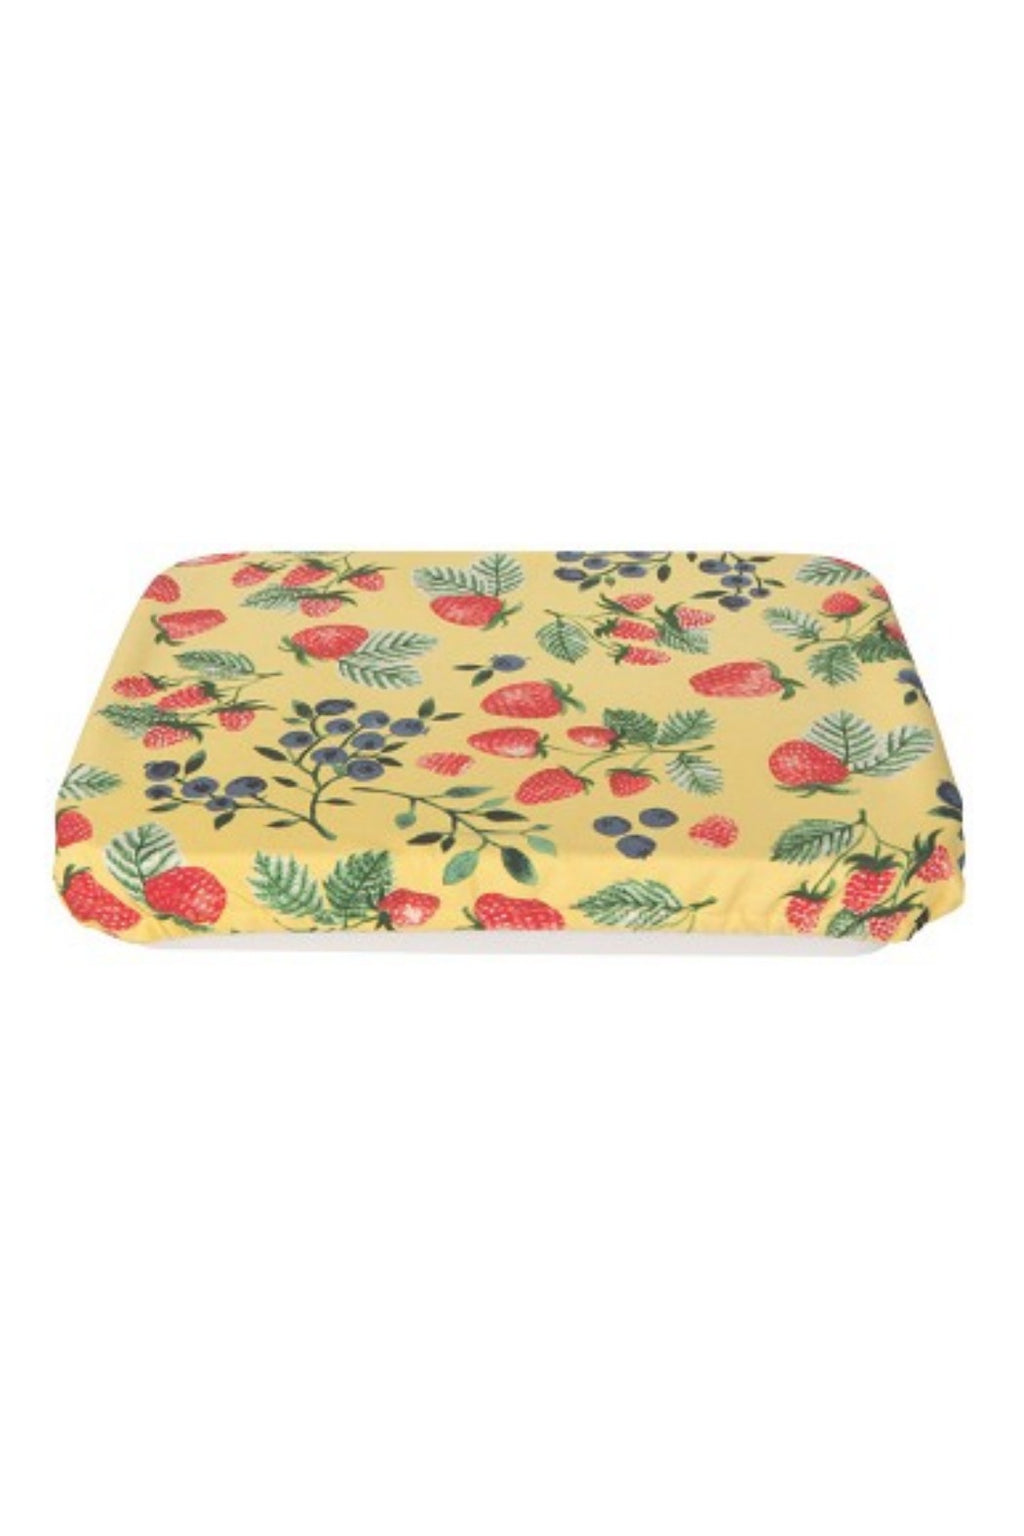 Now Designs Baking Dish Cover - Berry Patch